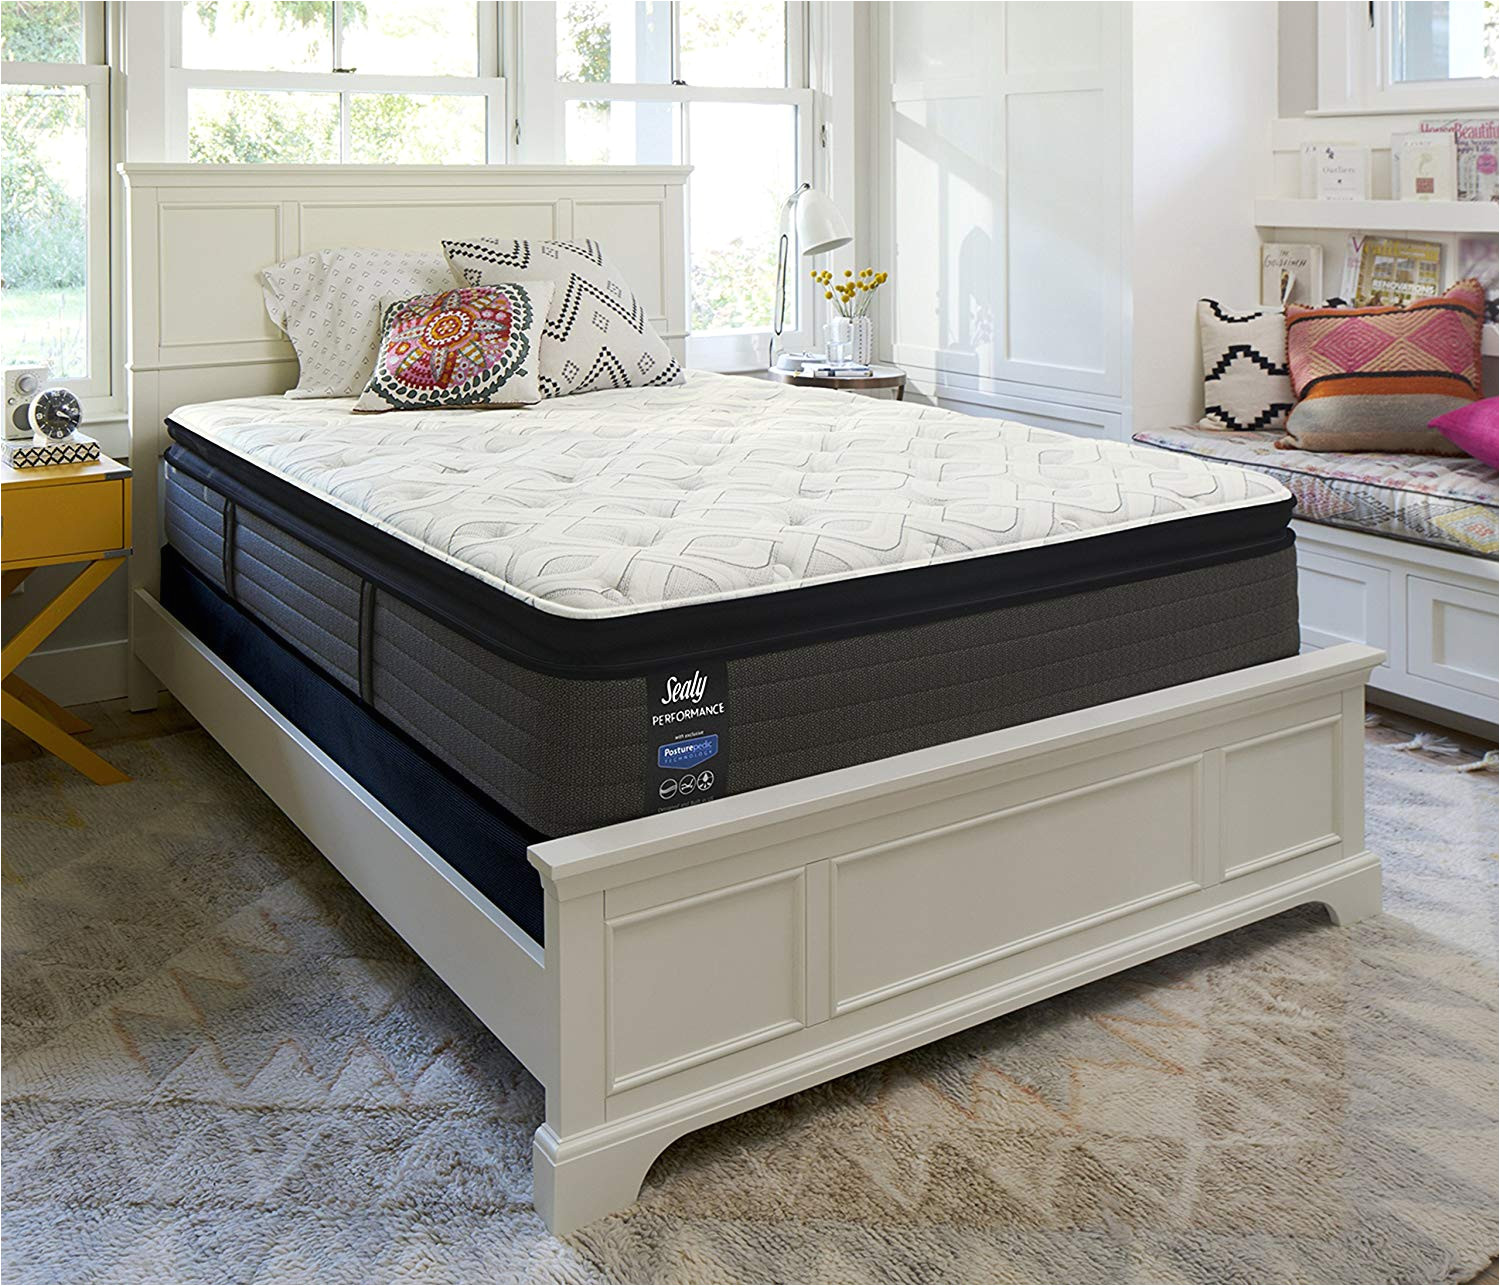 amazon com sealy response performance 14 inch cushion firm euro pillow top pro mattress king made in usa 10 year warranty kitchen dining